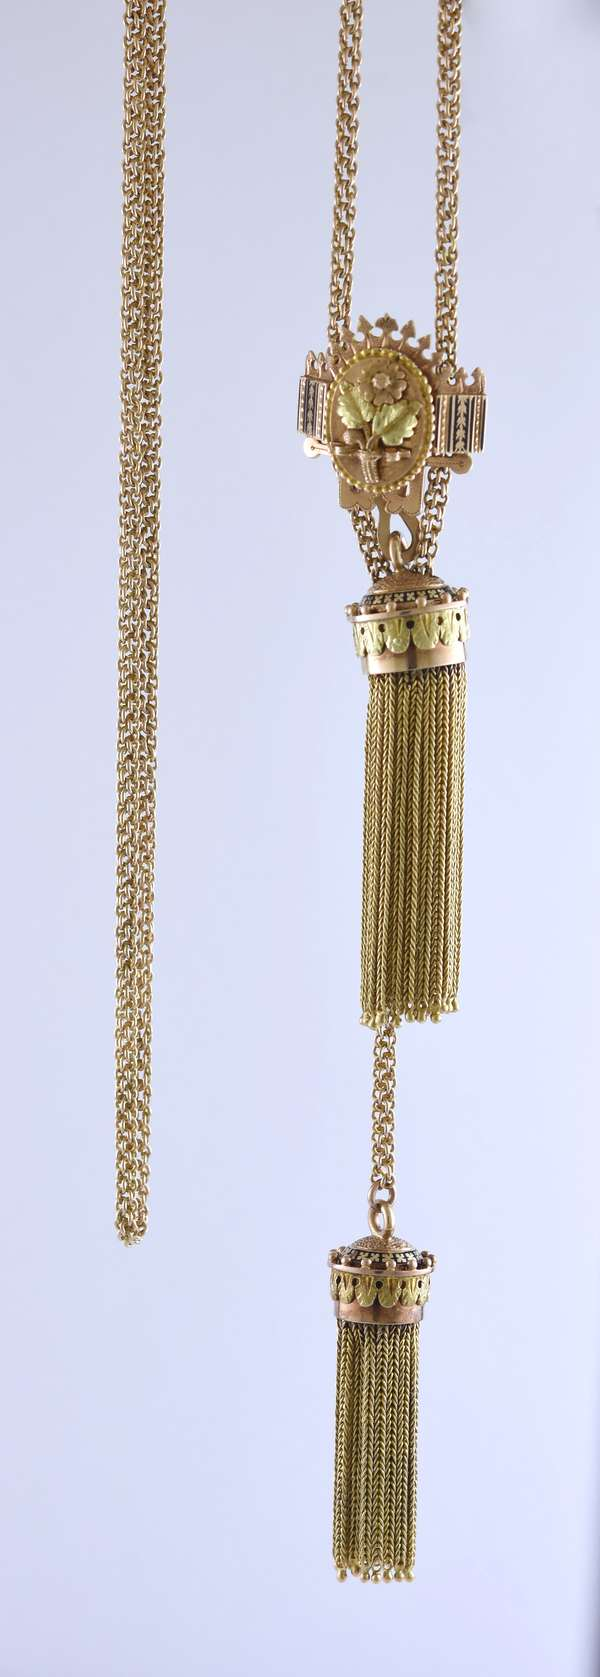 """Tested 14k tri-rose, yellow and green color gold slide chain with tassels, flower motif and black enamel accents, 42""""L., 60.8 grams"""